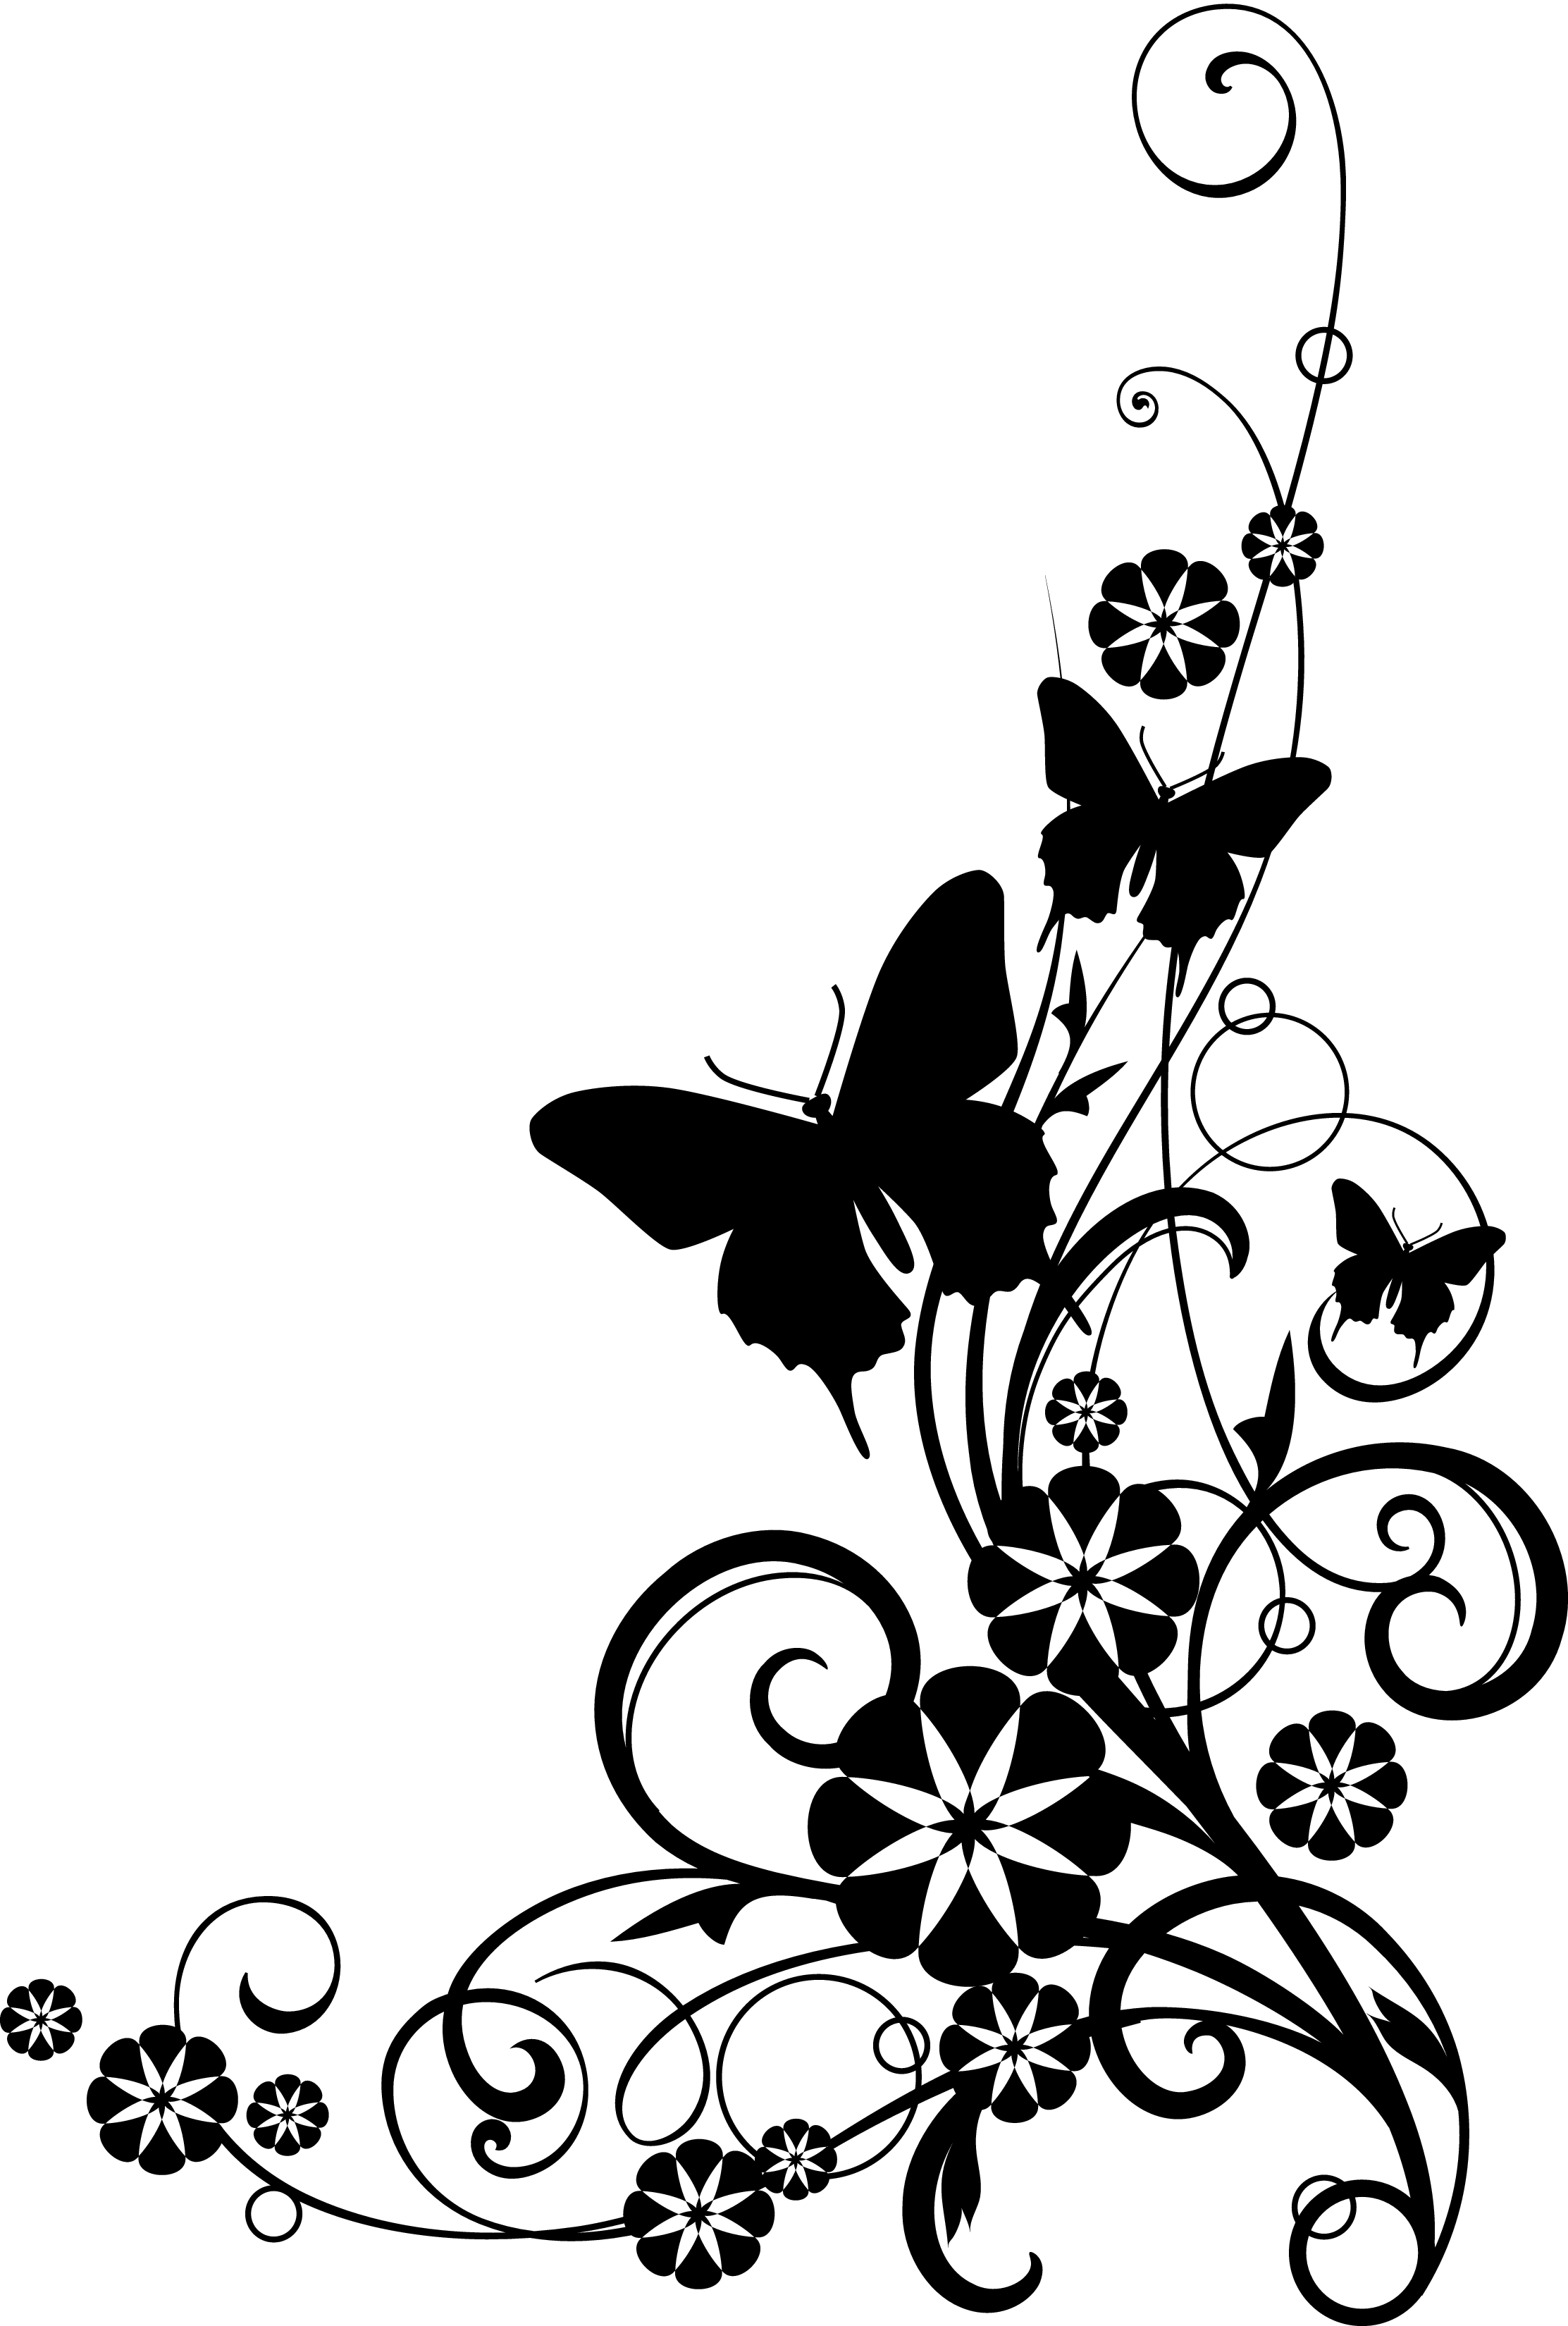 Black and white flower border clipart #41803.